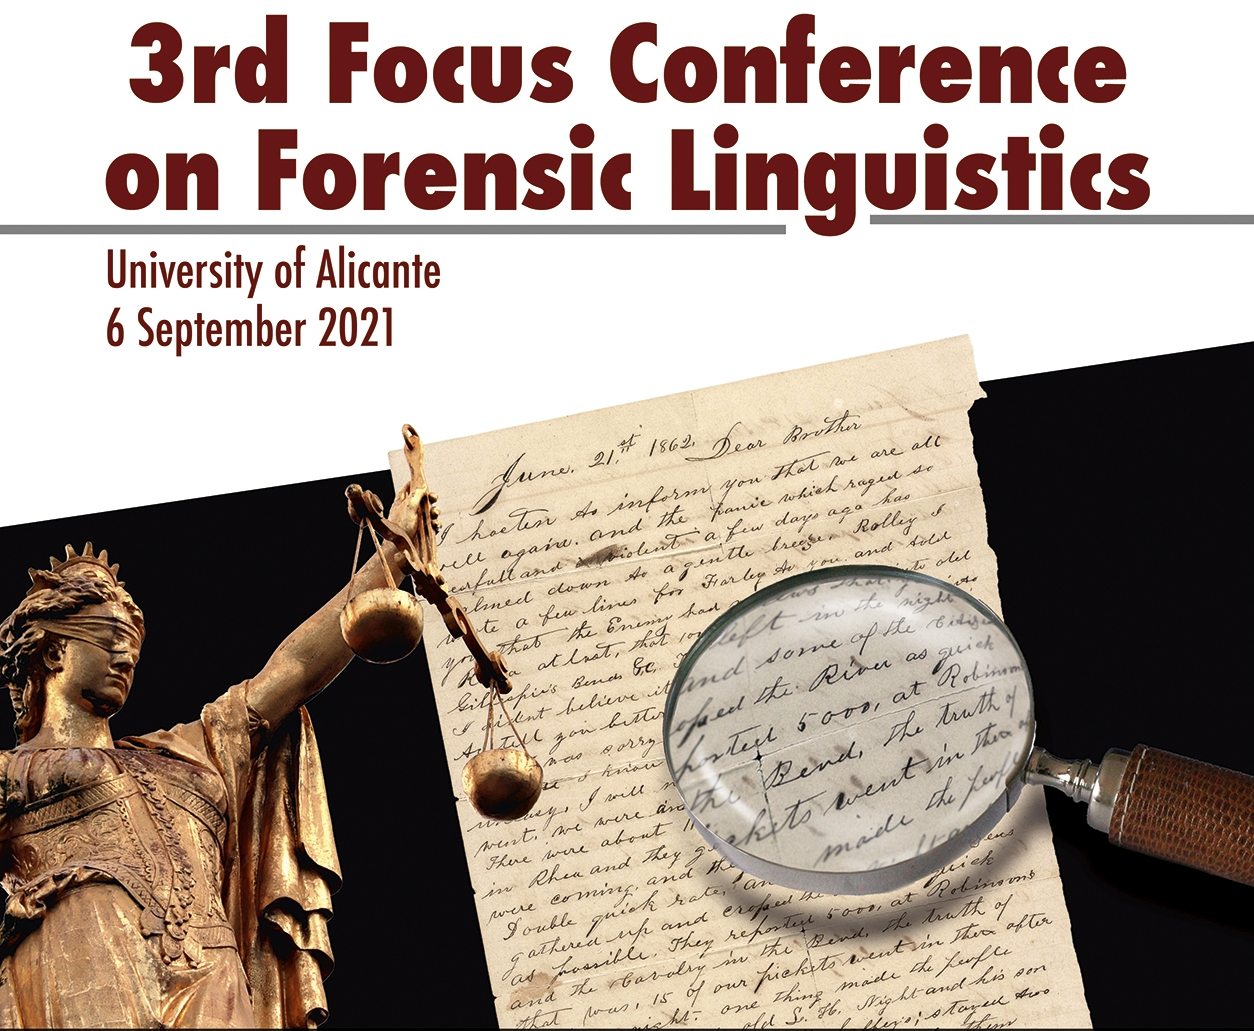 3rd ILLA Focus Conference on Forensic Linguistics